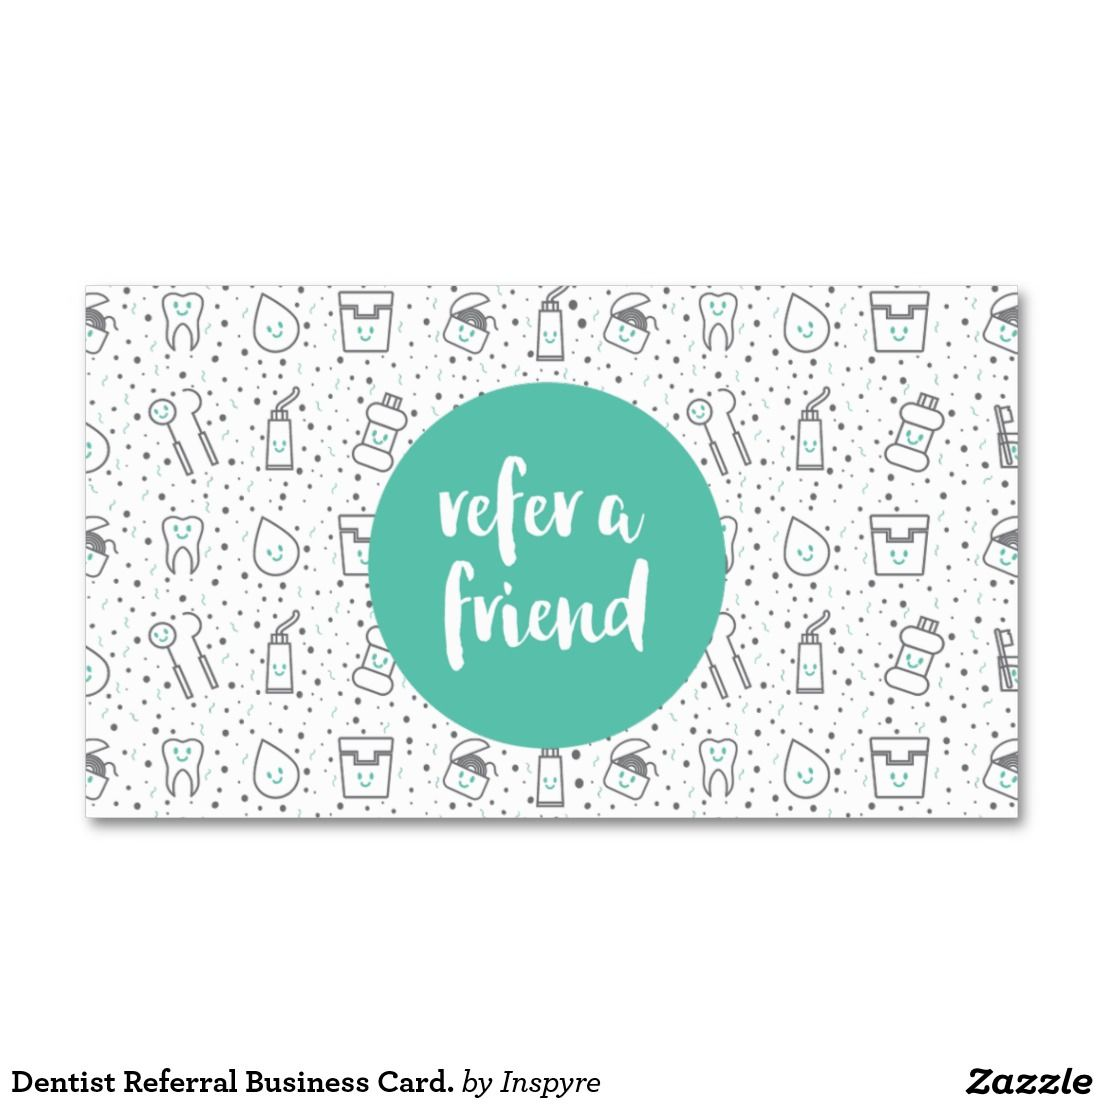 Create Your Own Profile Card Zazzle Com Business Cards Creative Templates Business Cards Creative Business Card Design